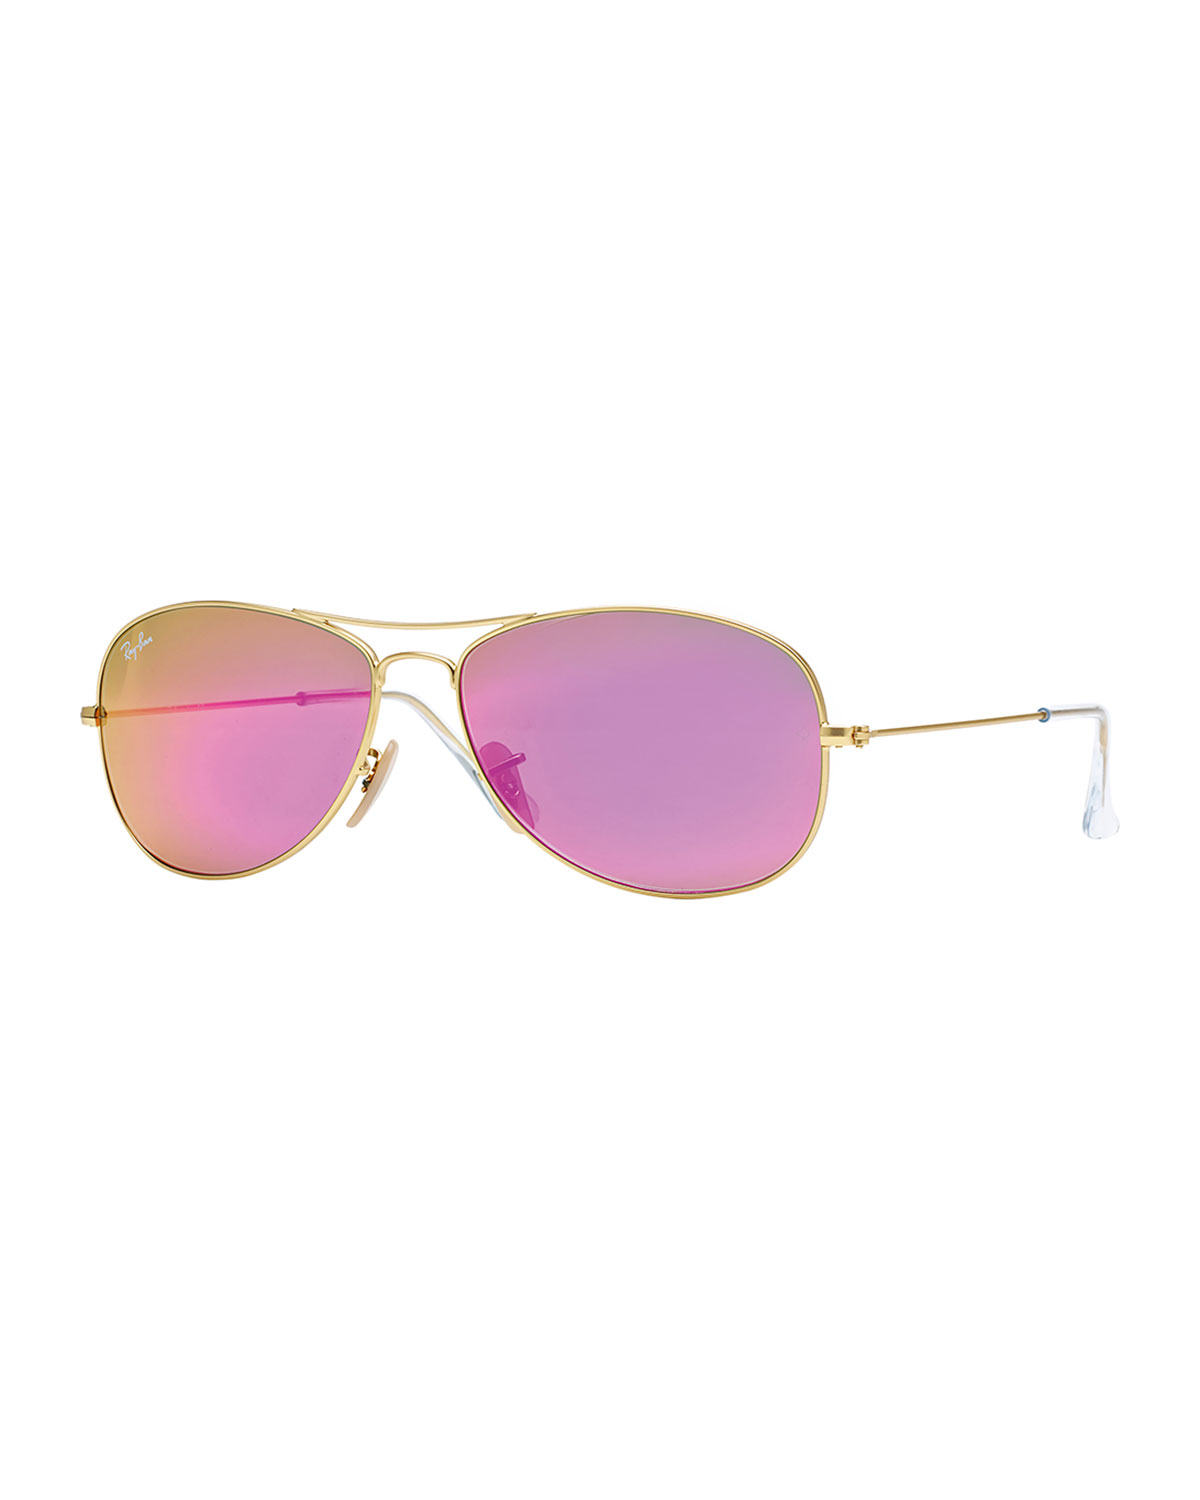 Ray-Ban Aviator Sunglasses with Pink Mirror Lens, Golden